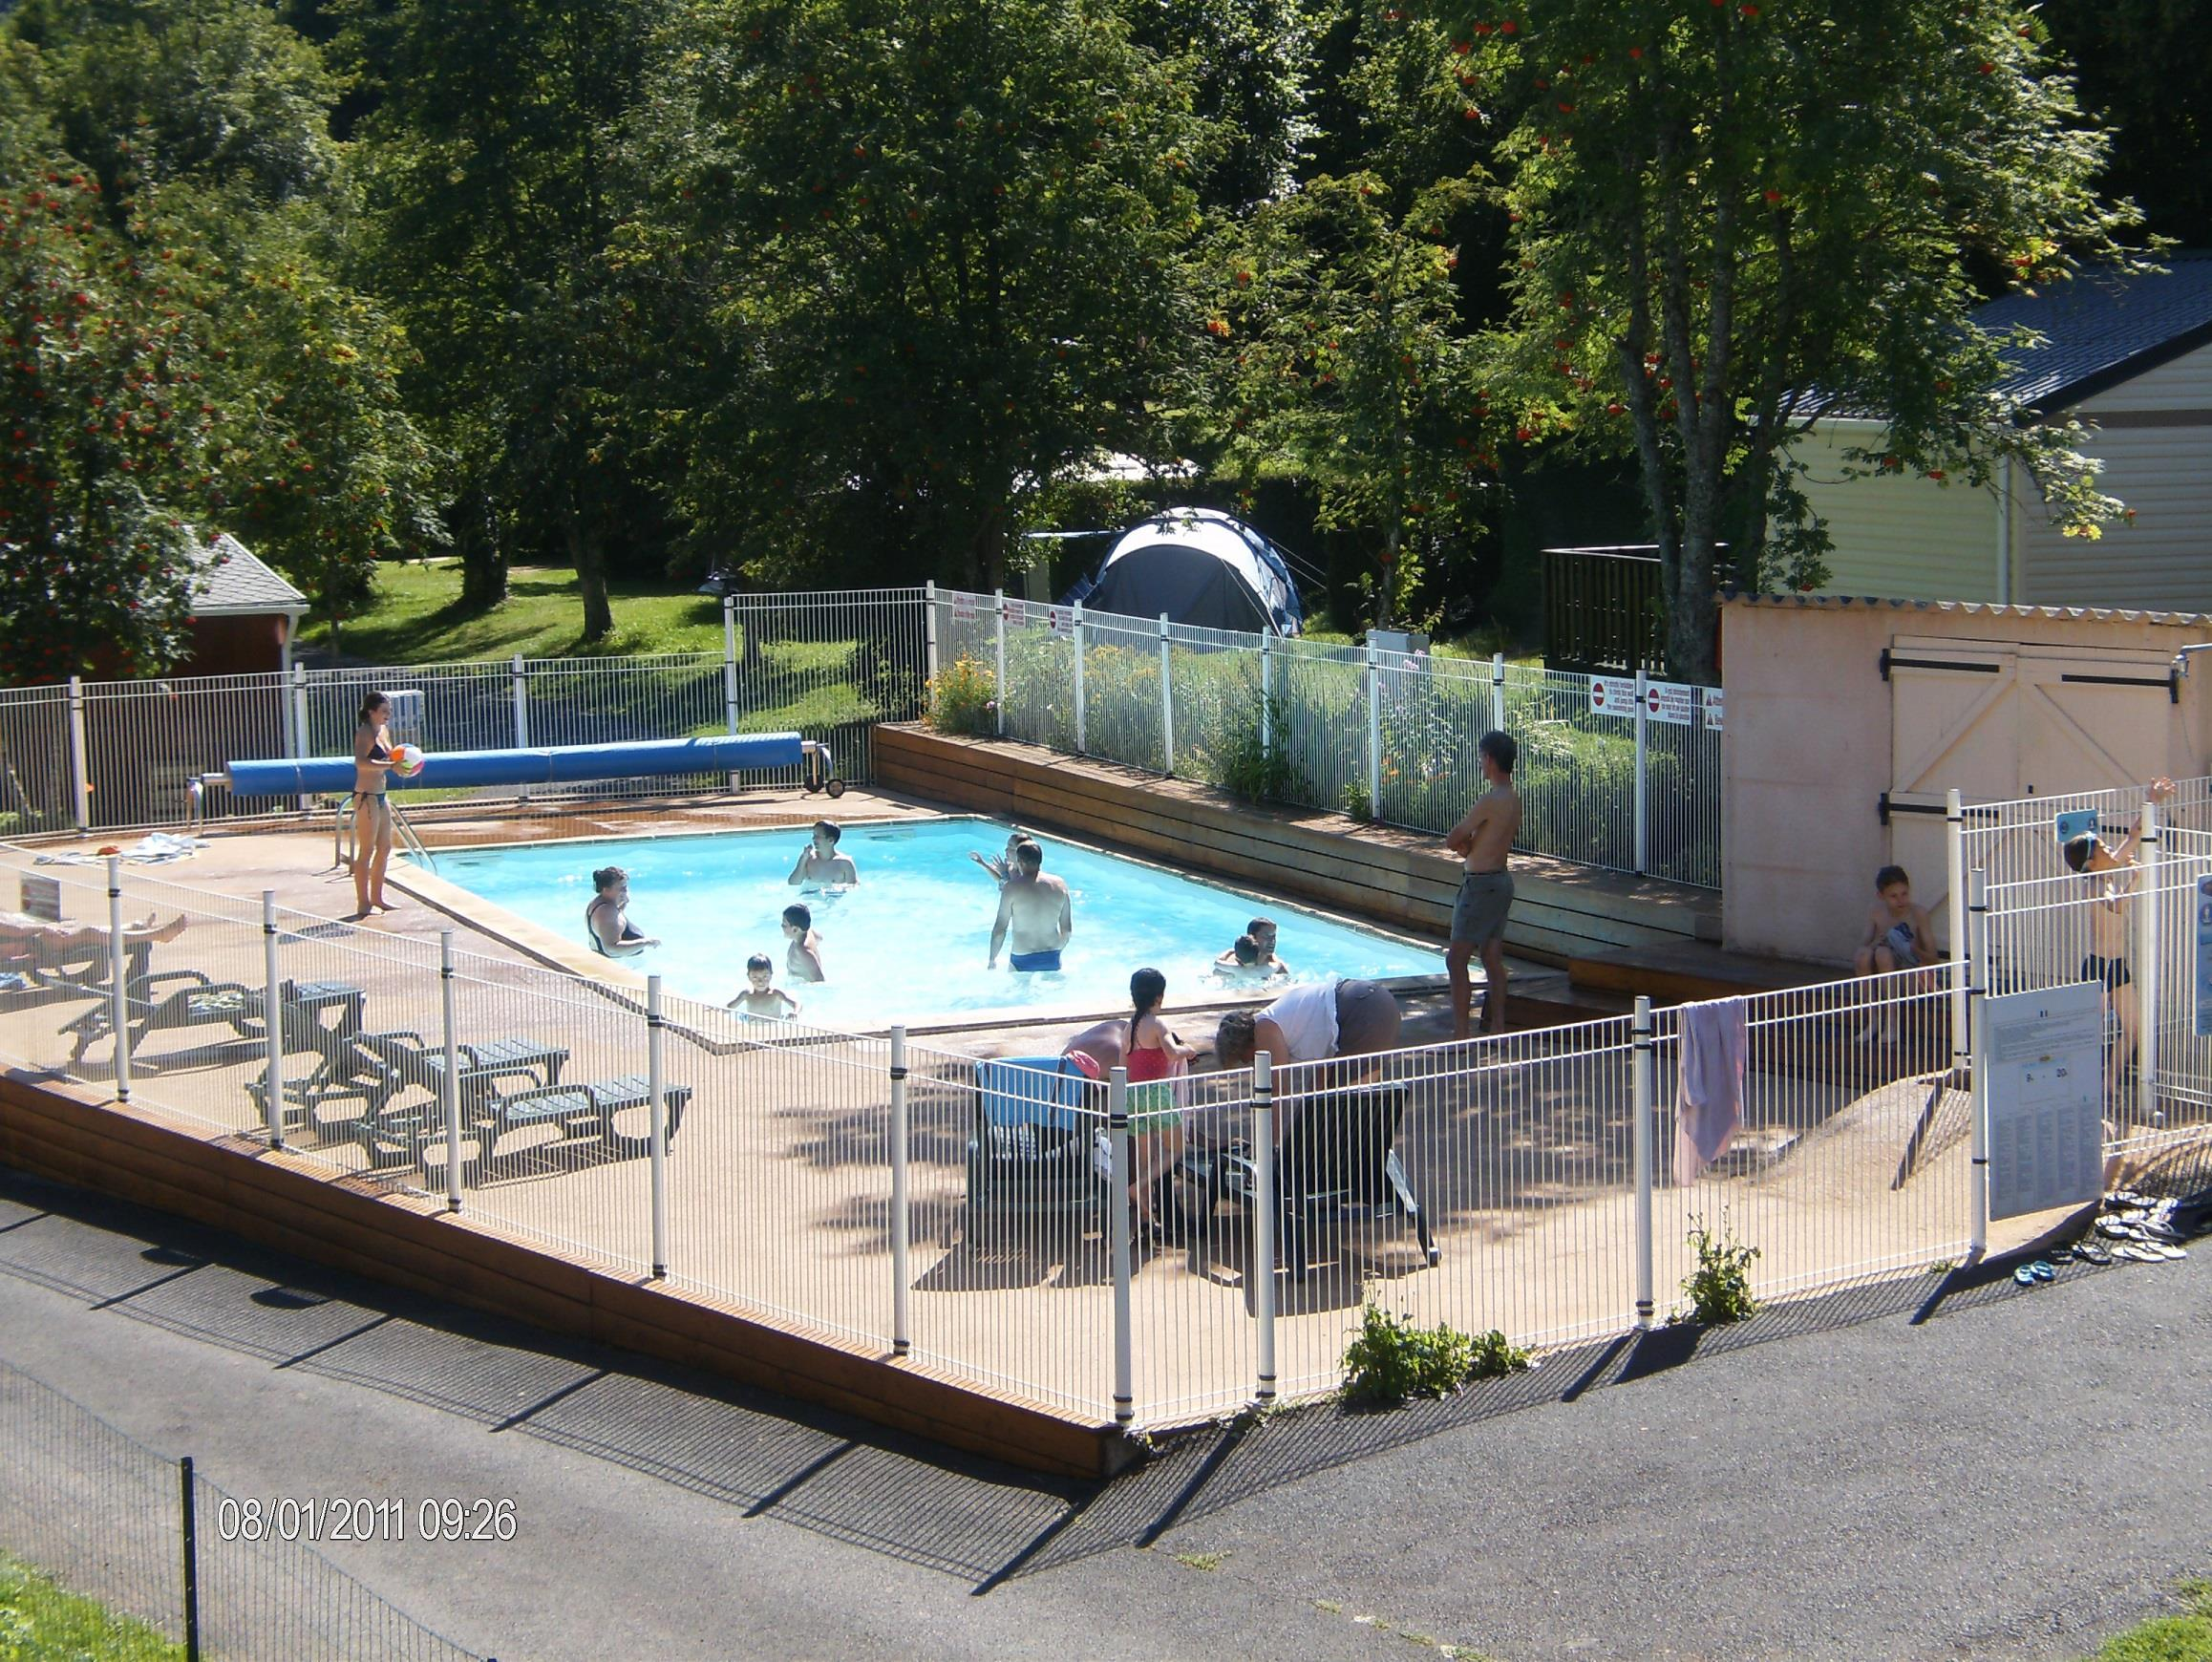 Betrieb Camping L'Ombrage - St Pierre Colamine